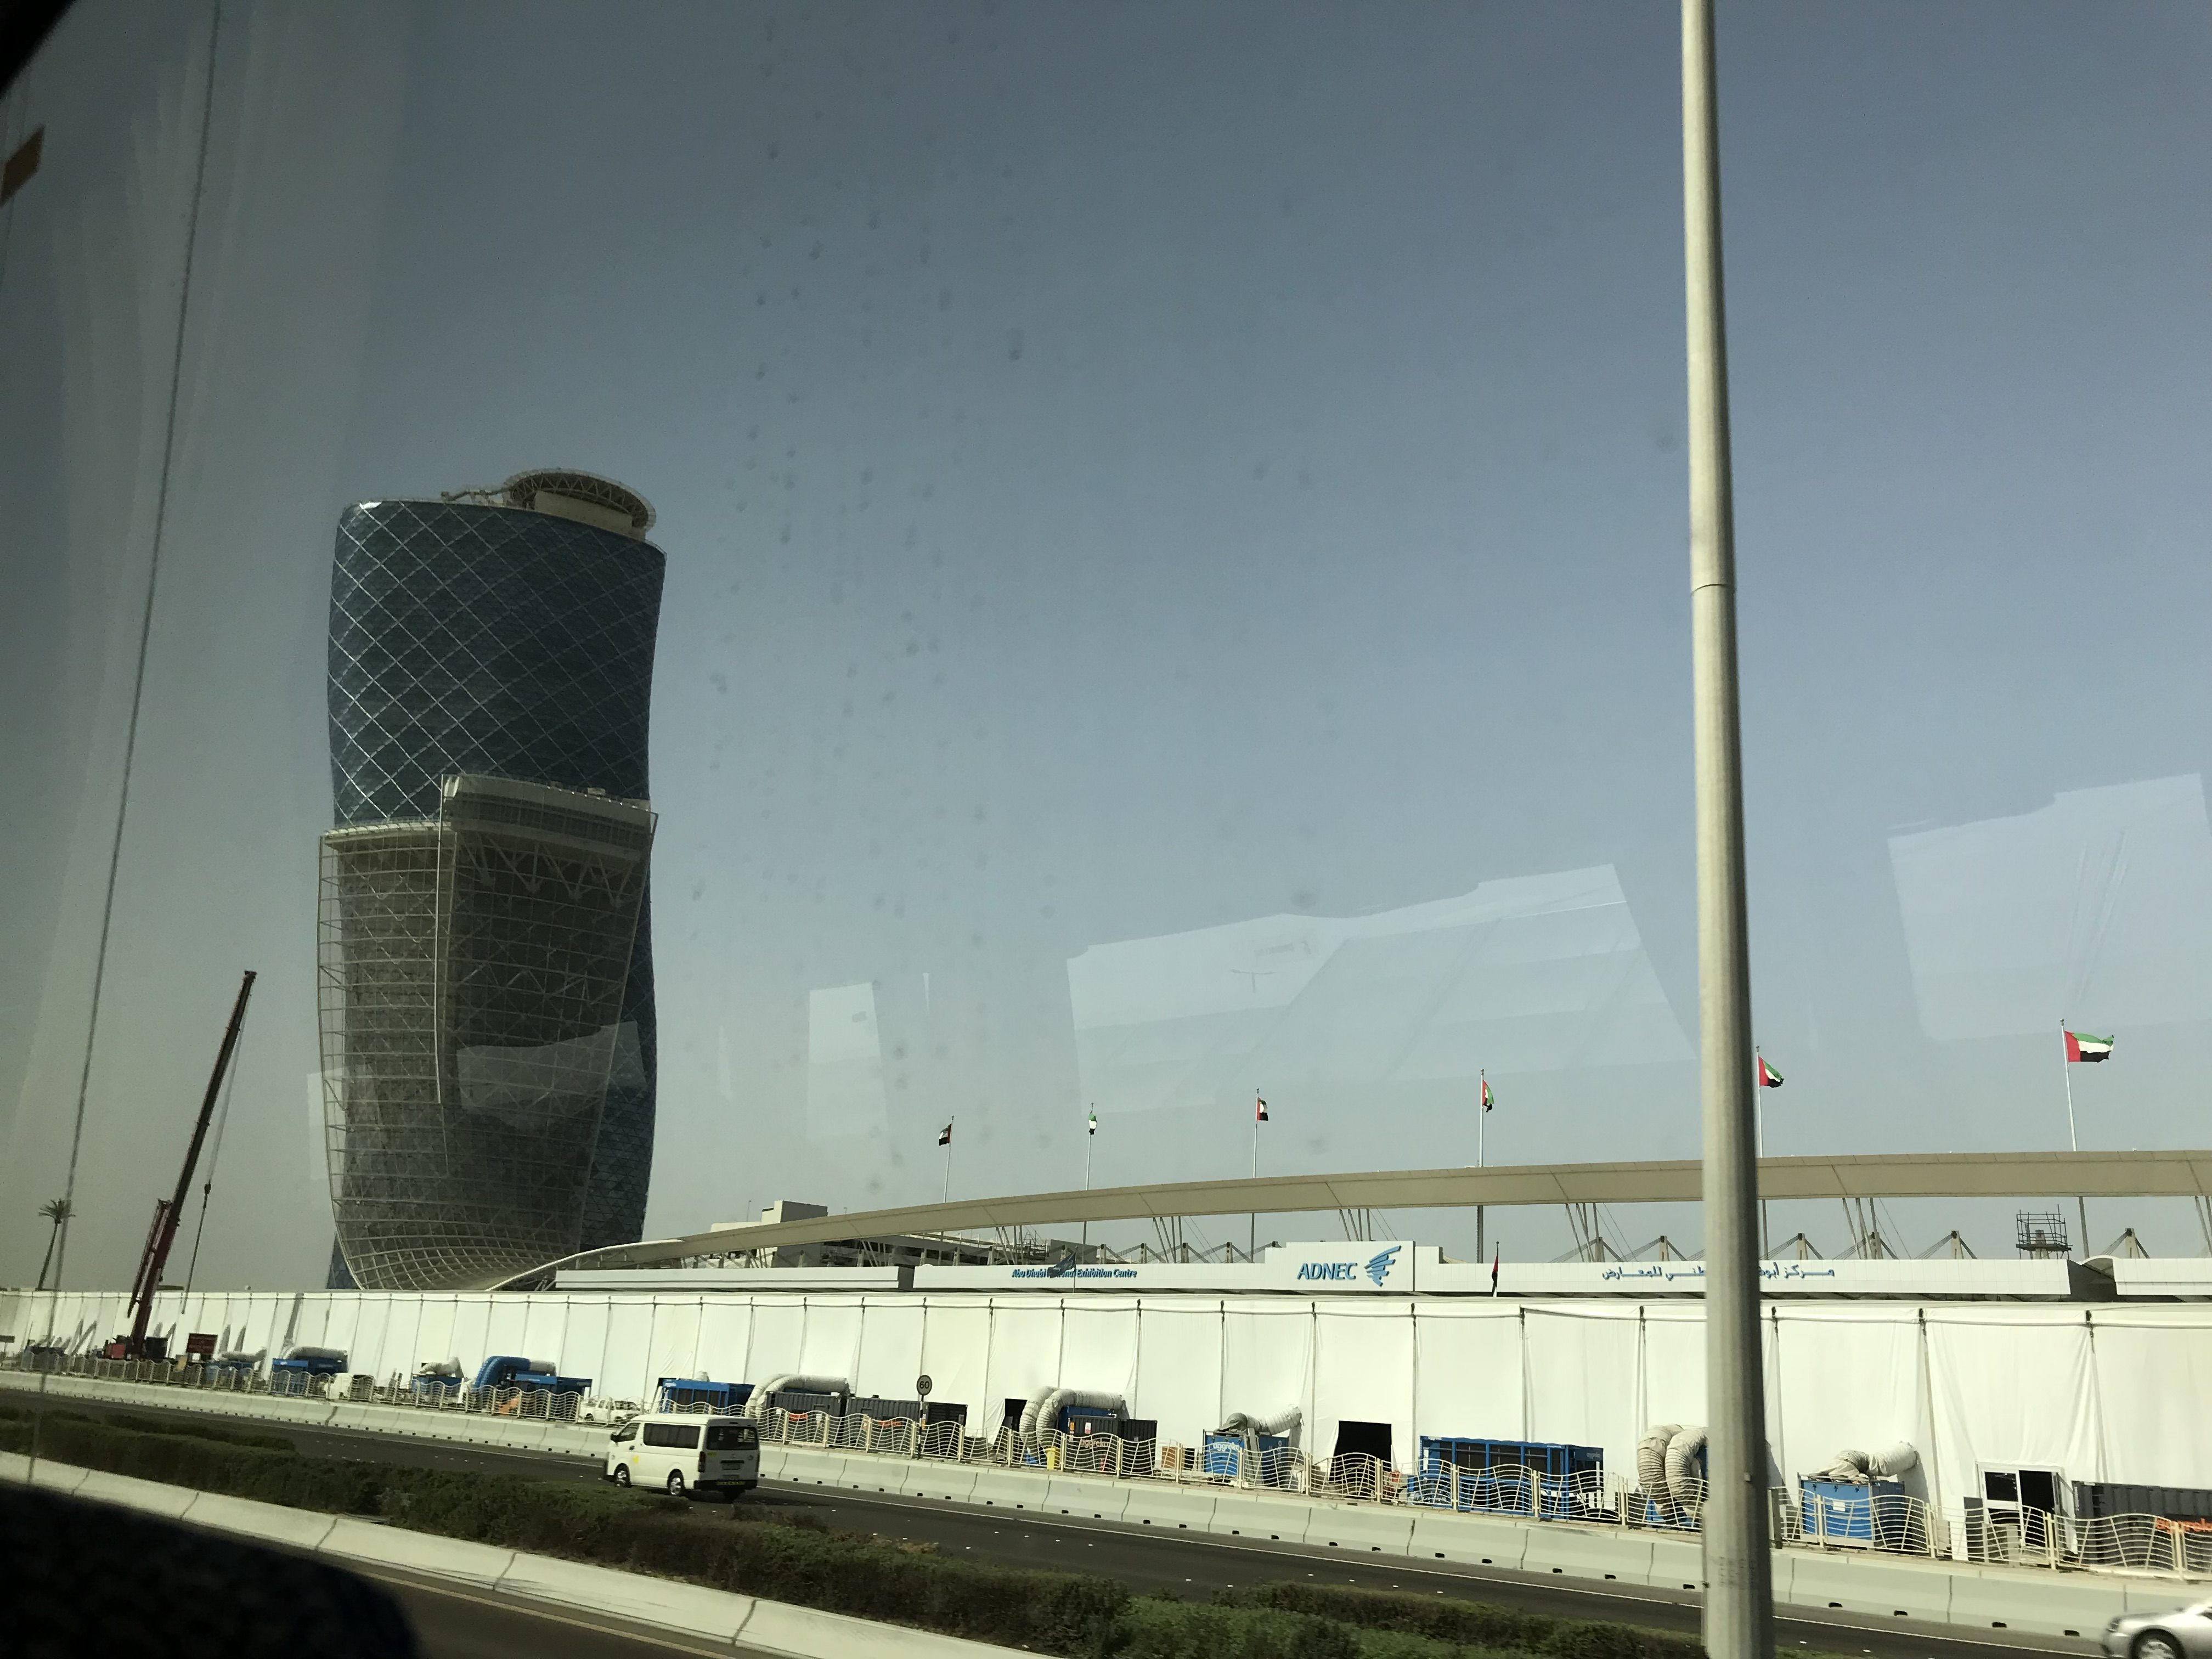 Bye ADNEC. I had good memories here working with people all over the world.